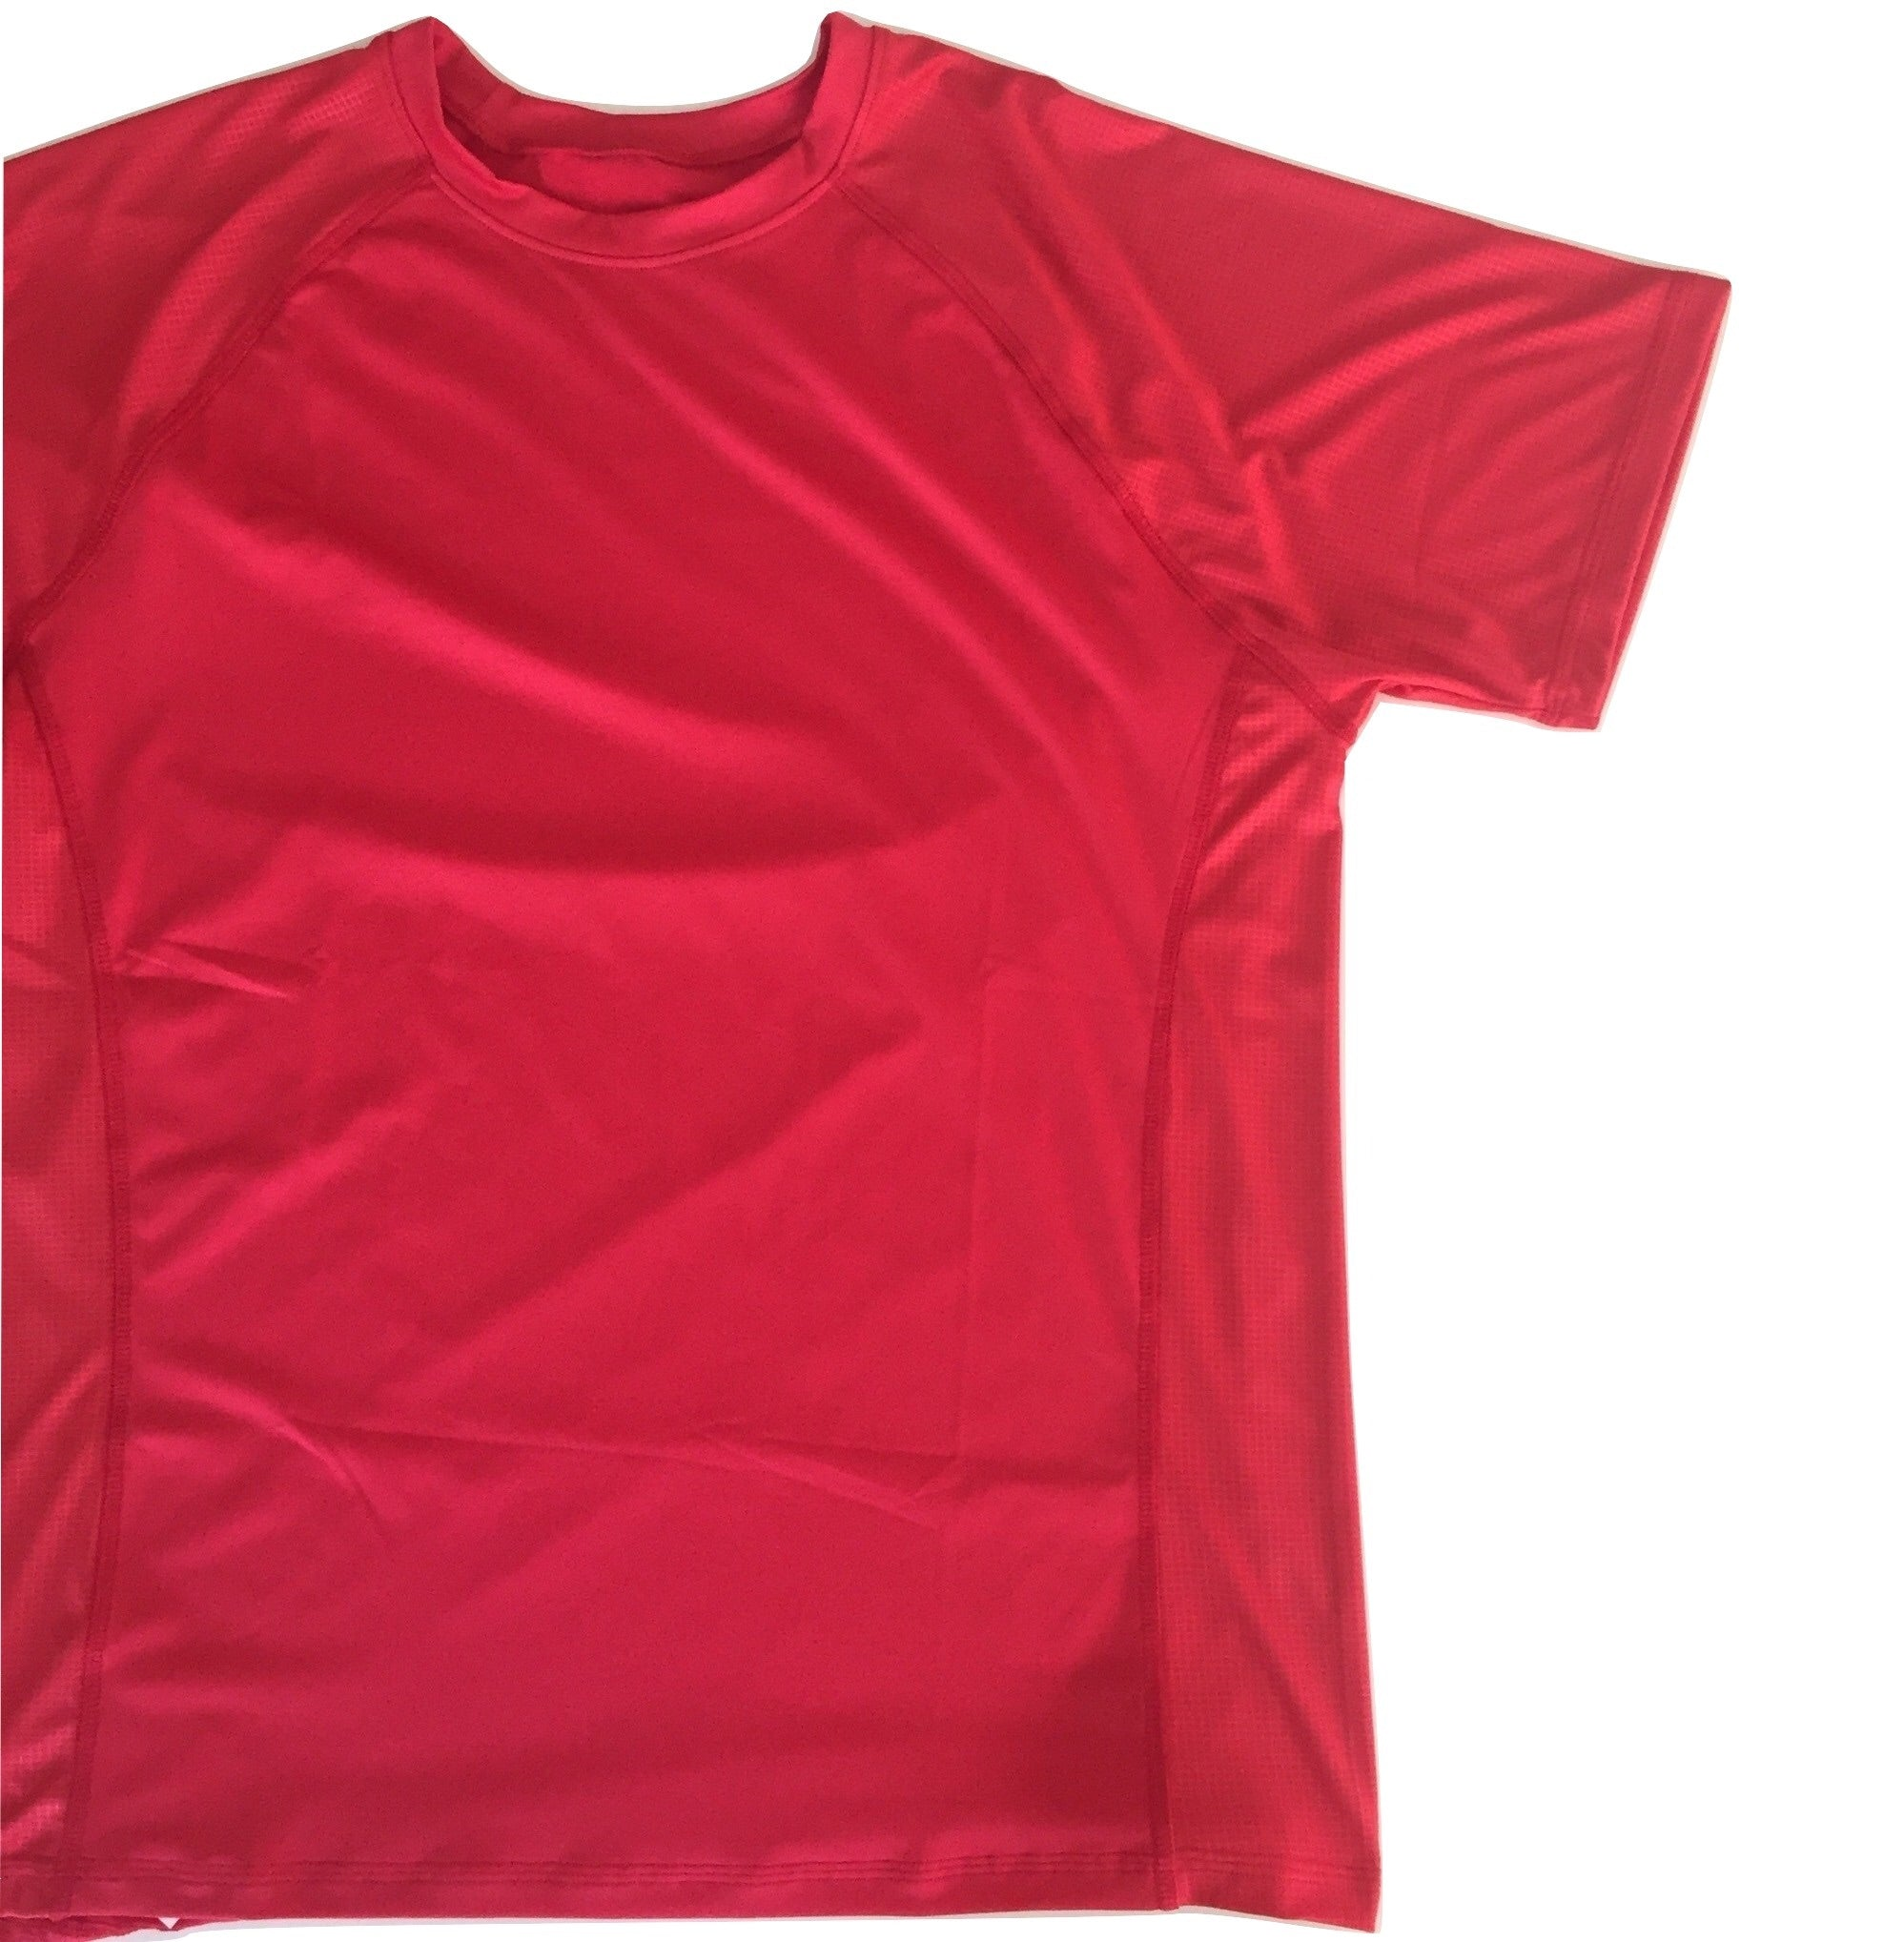 Red Running Shirt